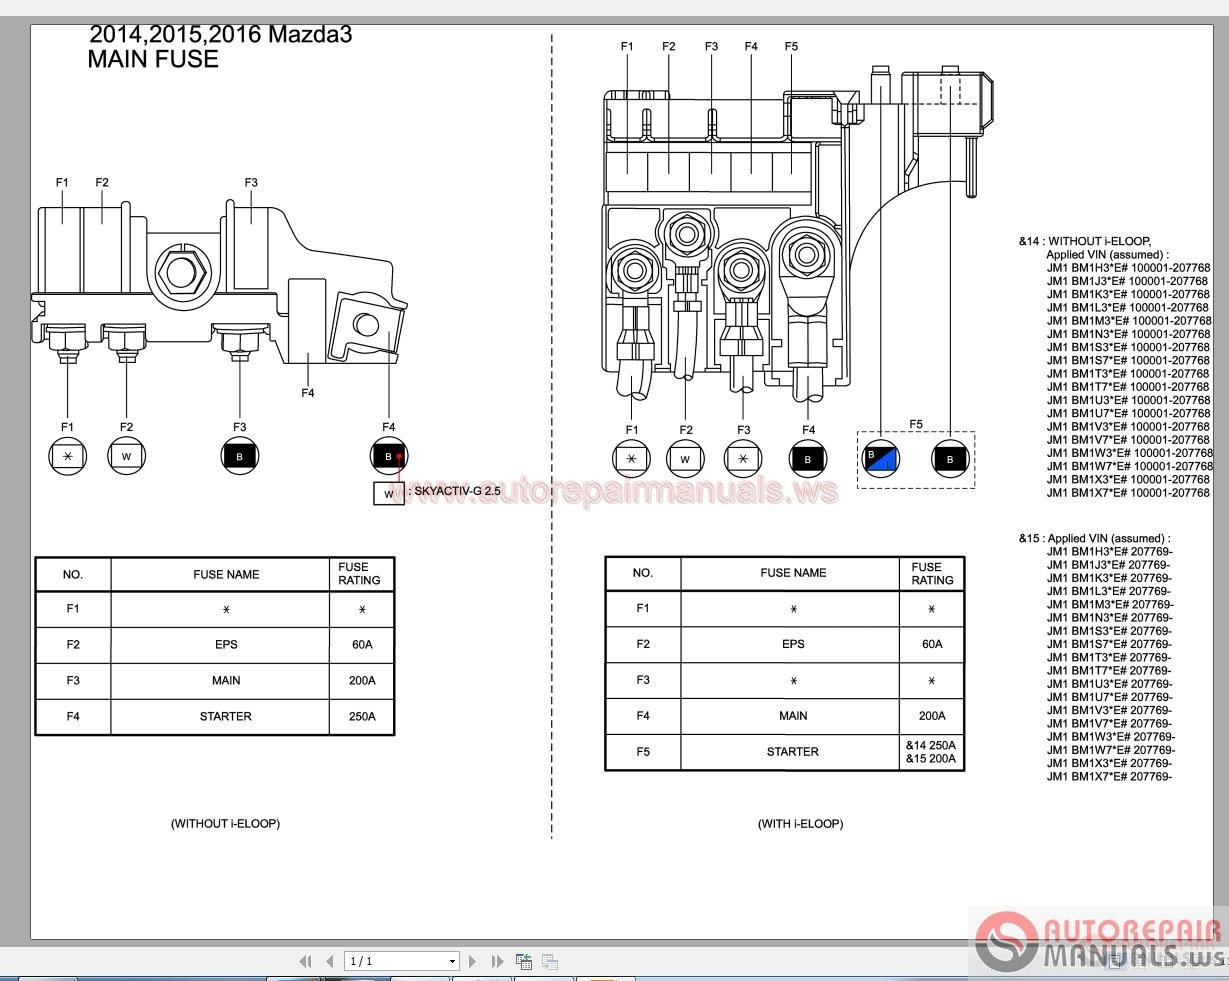 MAZDA_3_2015_24L_Wiring_Diagrams3 hd wallpapers 2008 mazda 3 wiring diagram manual 2008 mazda 3 wiring diagram manual at honlapkeszites.co